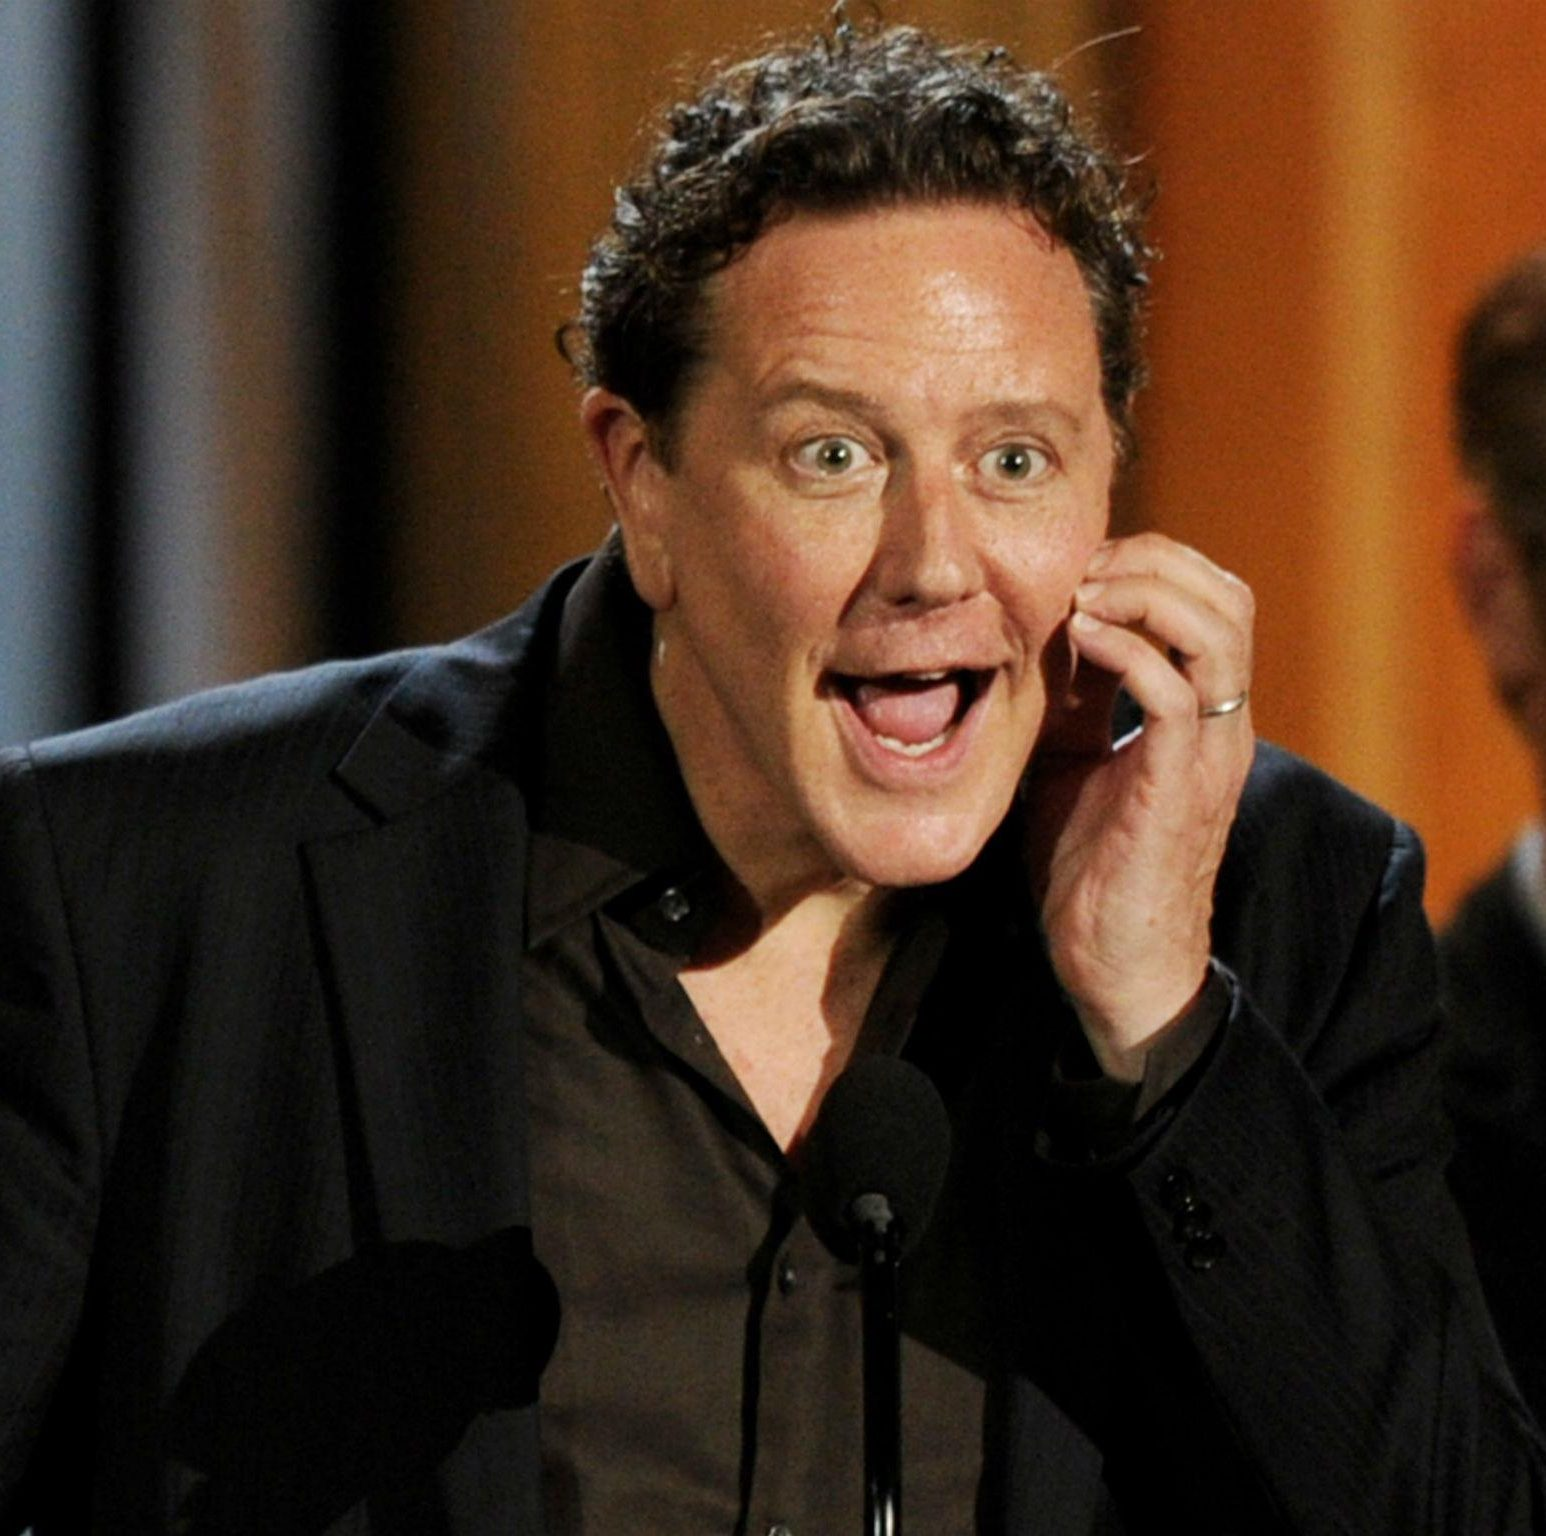 35 3 e1602507448694 Judge Reinhold: How He Got The Name 'Judge' And More You Never Knew About The 80s Star